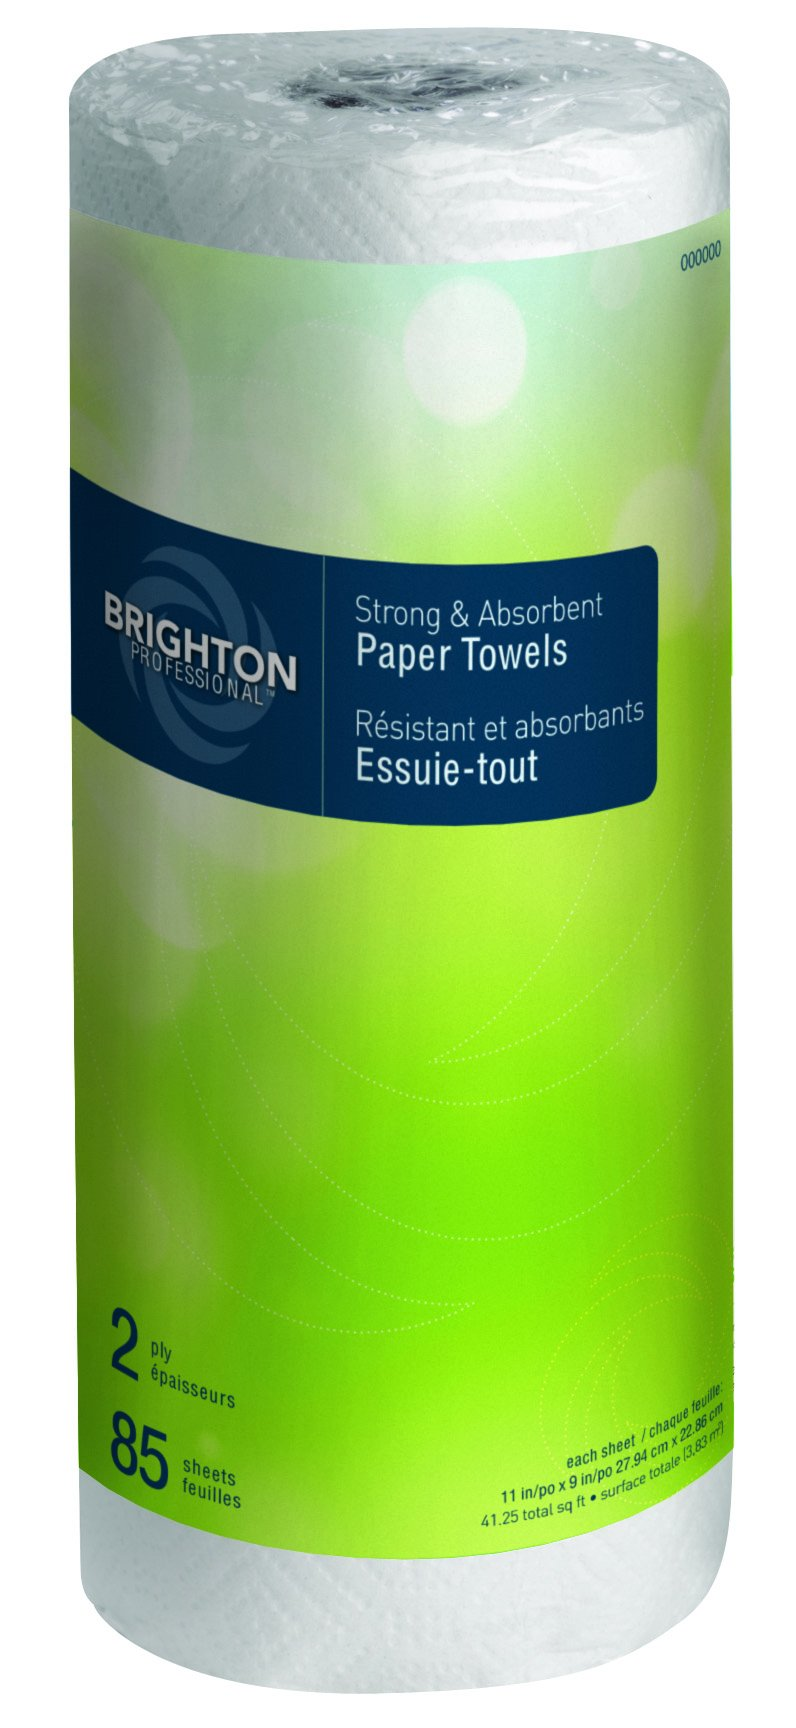 Brighton Professional Kitchen Roll Towel, 2-ply, Full Size, 85 sheets/Roll, 30 rolls/case, (21810CT)